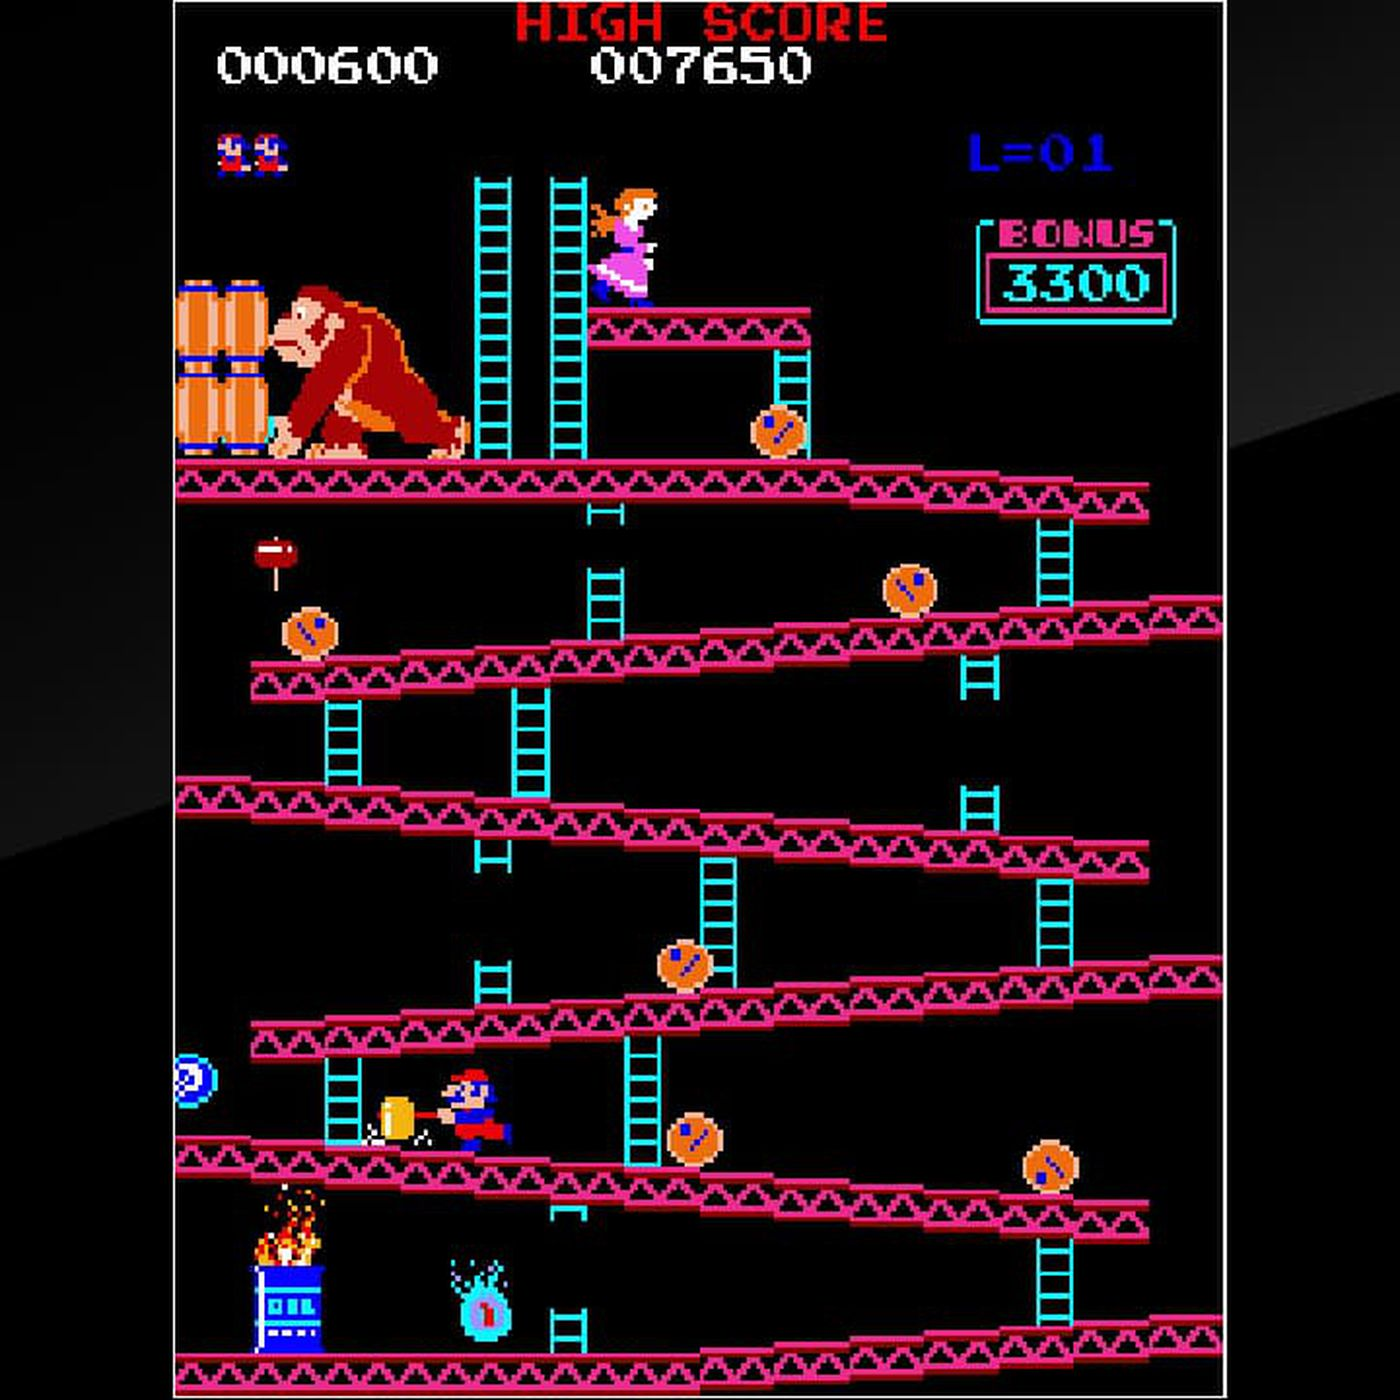 Arcade Donkey Kong re-released for first time on Nintendo